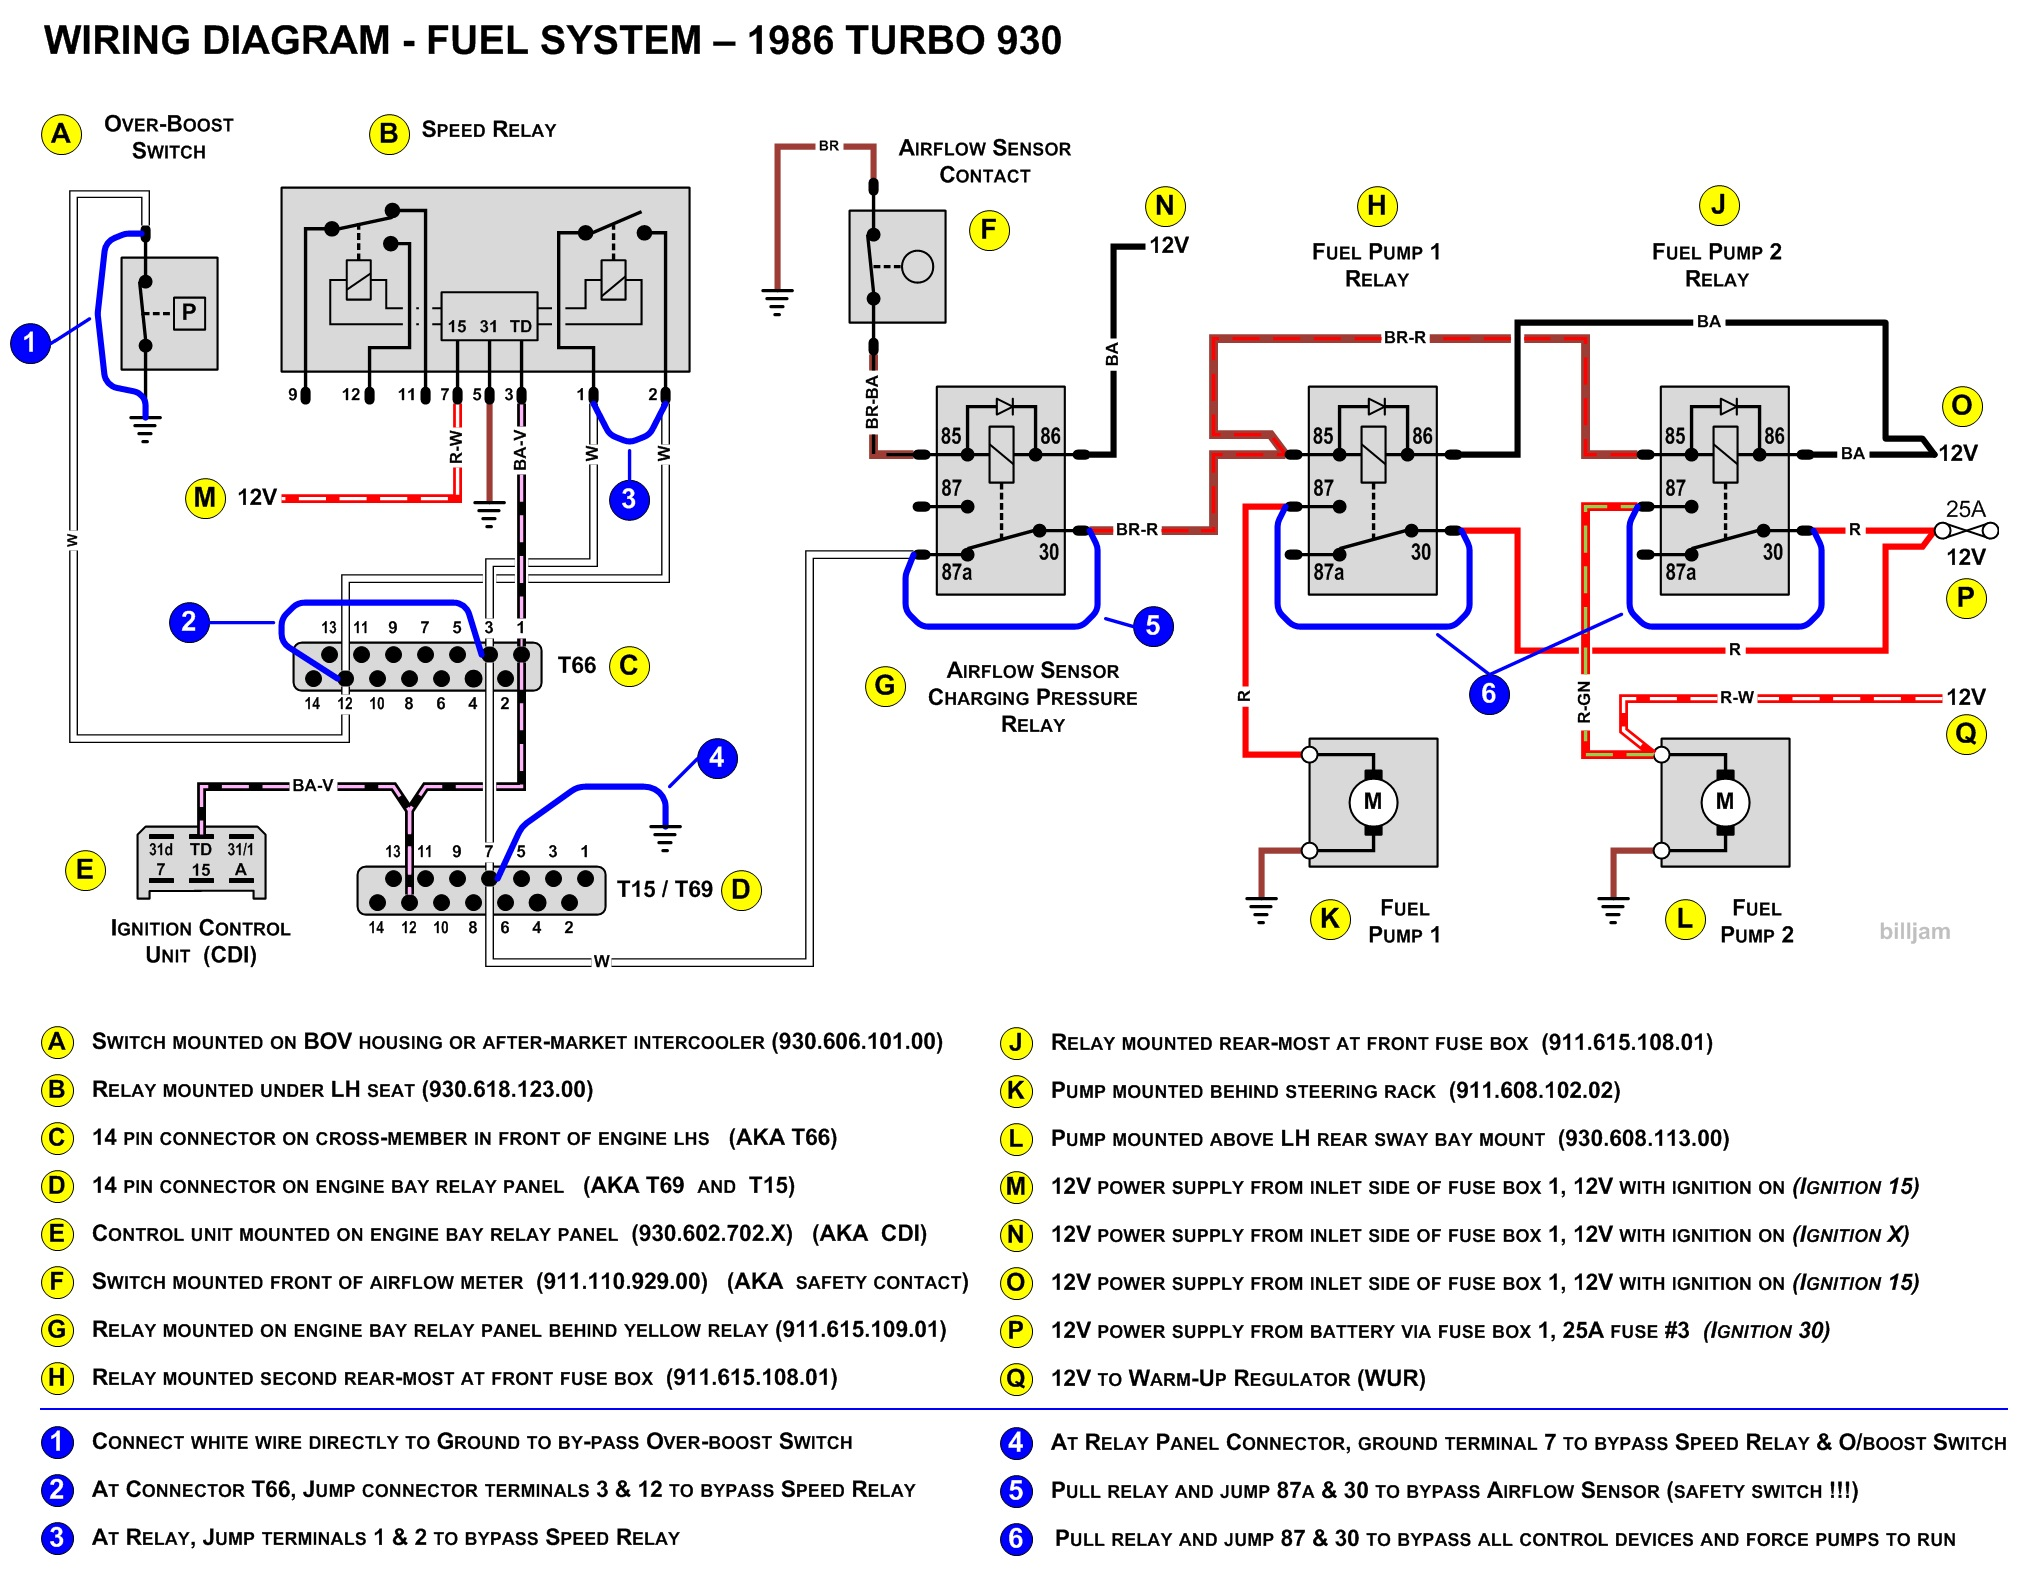 86 porsche 930 fuel system wiring diagram jumpers made a fuse box label for my 88 page 3 pelican parts technical bbs  at soozxer.org